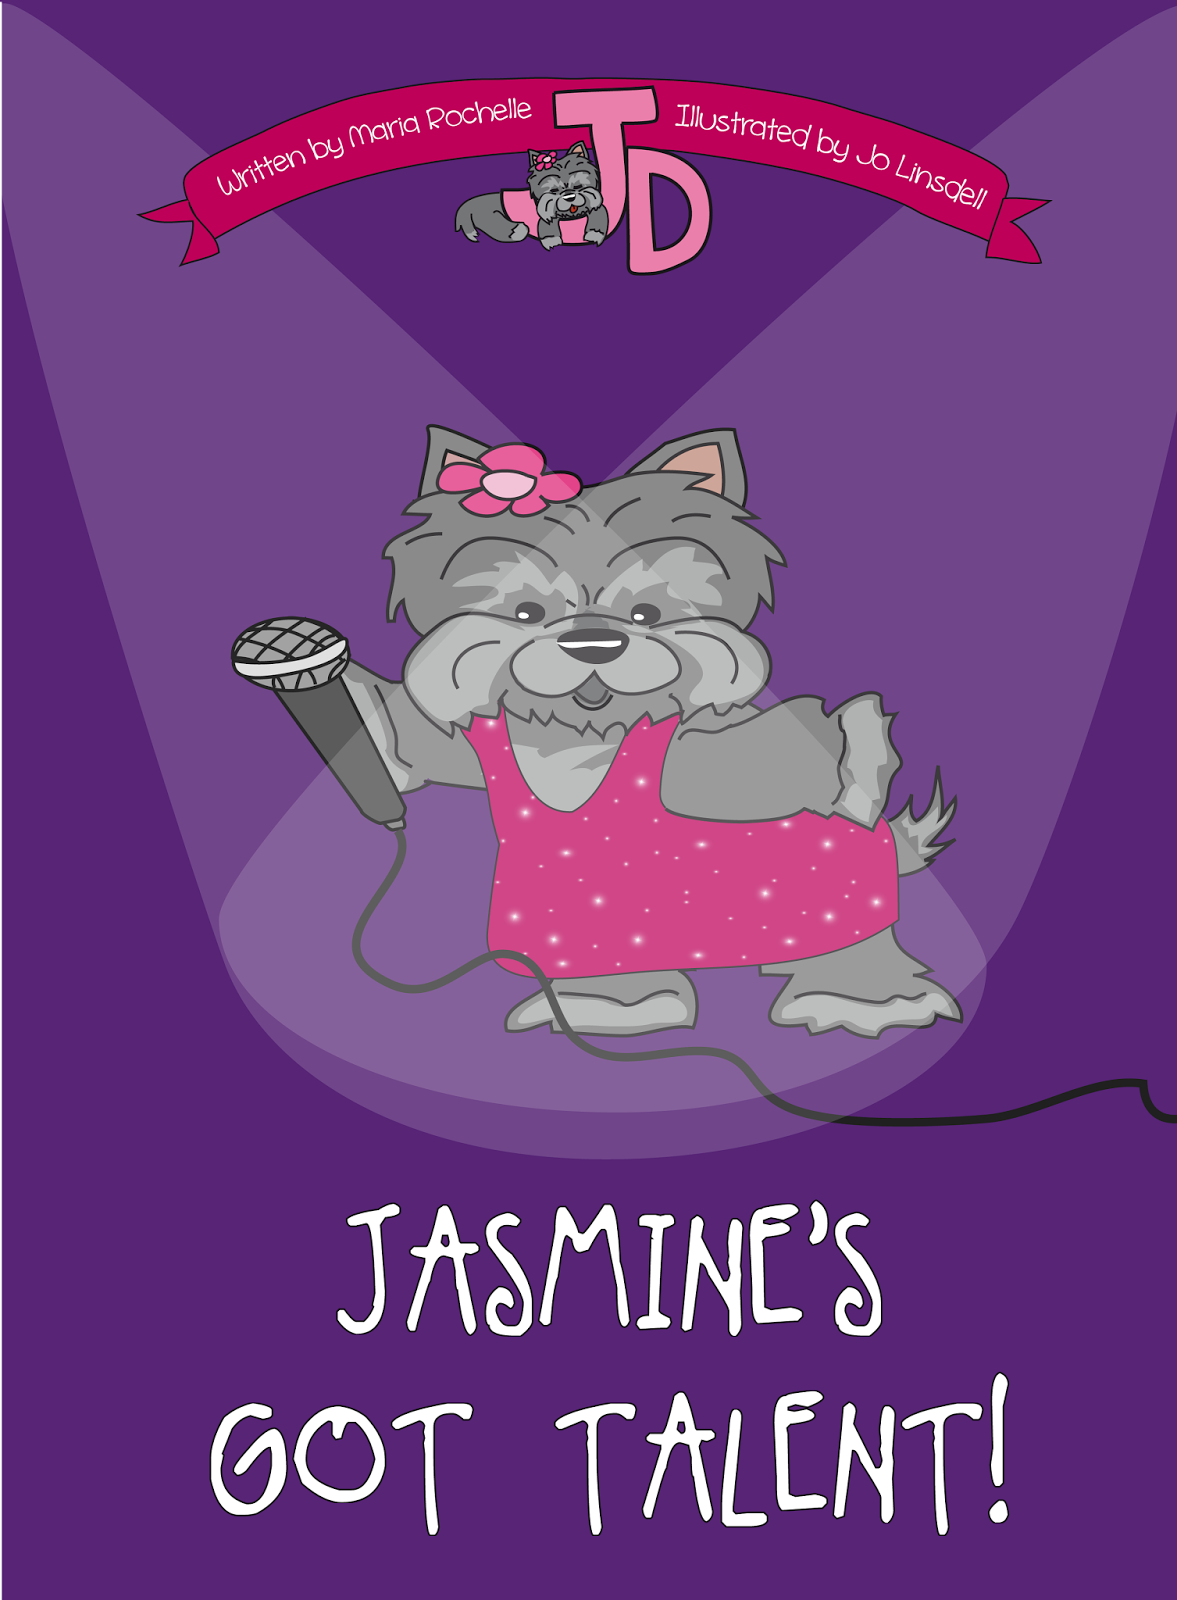 Jasmine's Got Talent! by Maria Rochelle. Illustrated by Jo Linsdell